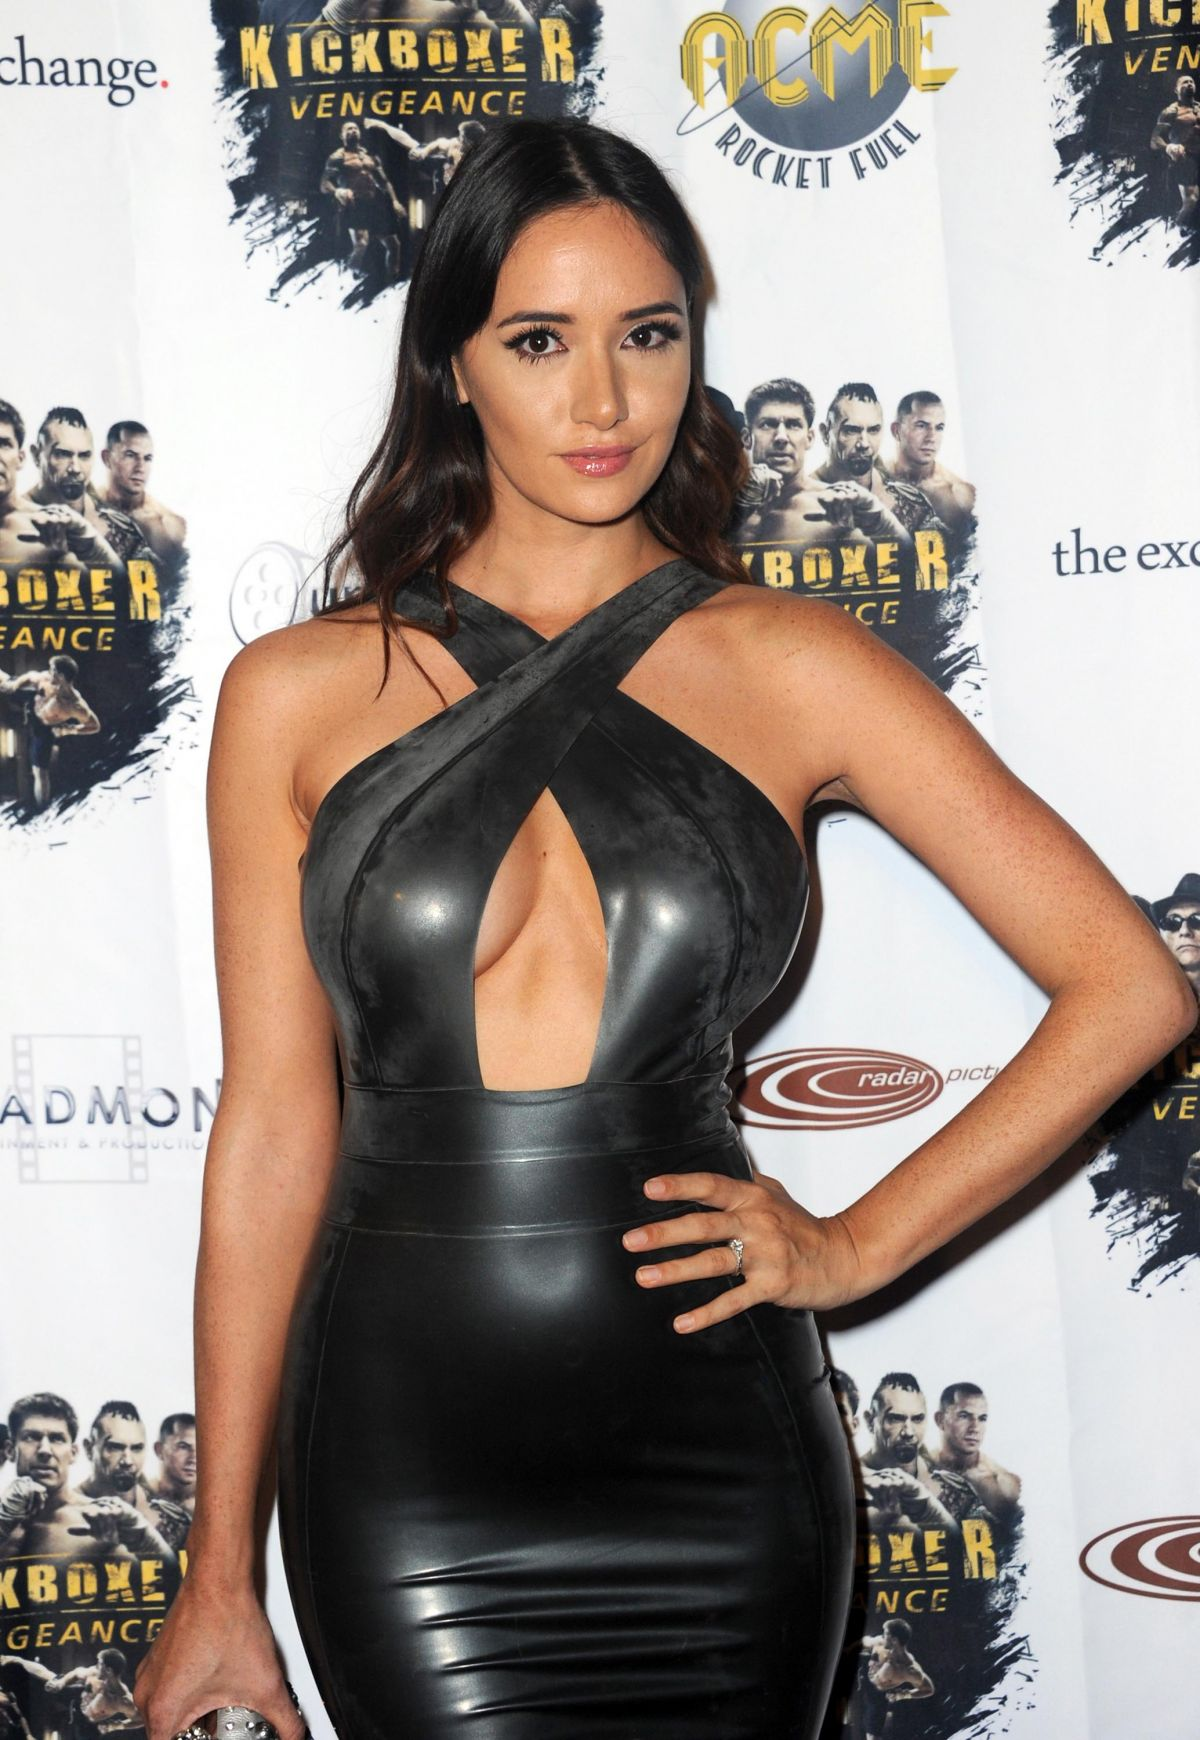 Sara Malakul Lane Attends The Premiere Of Rlj Entertainment S Kickboxer Vengeance At Ipic